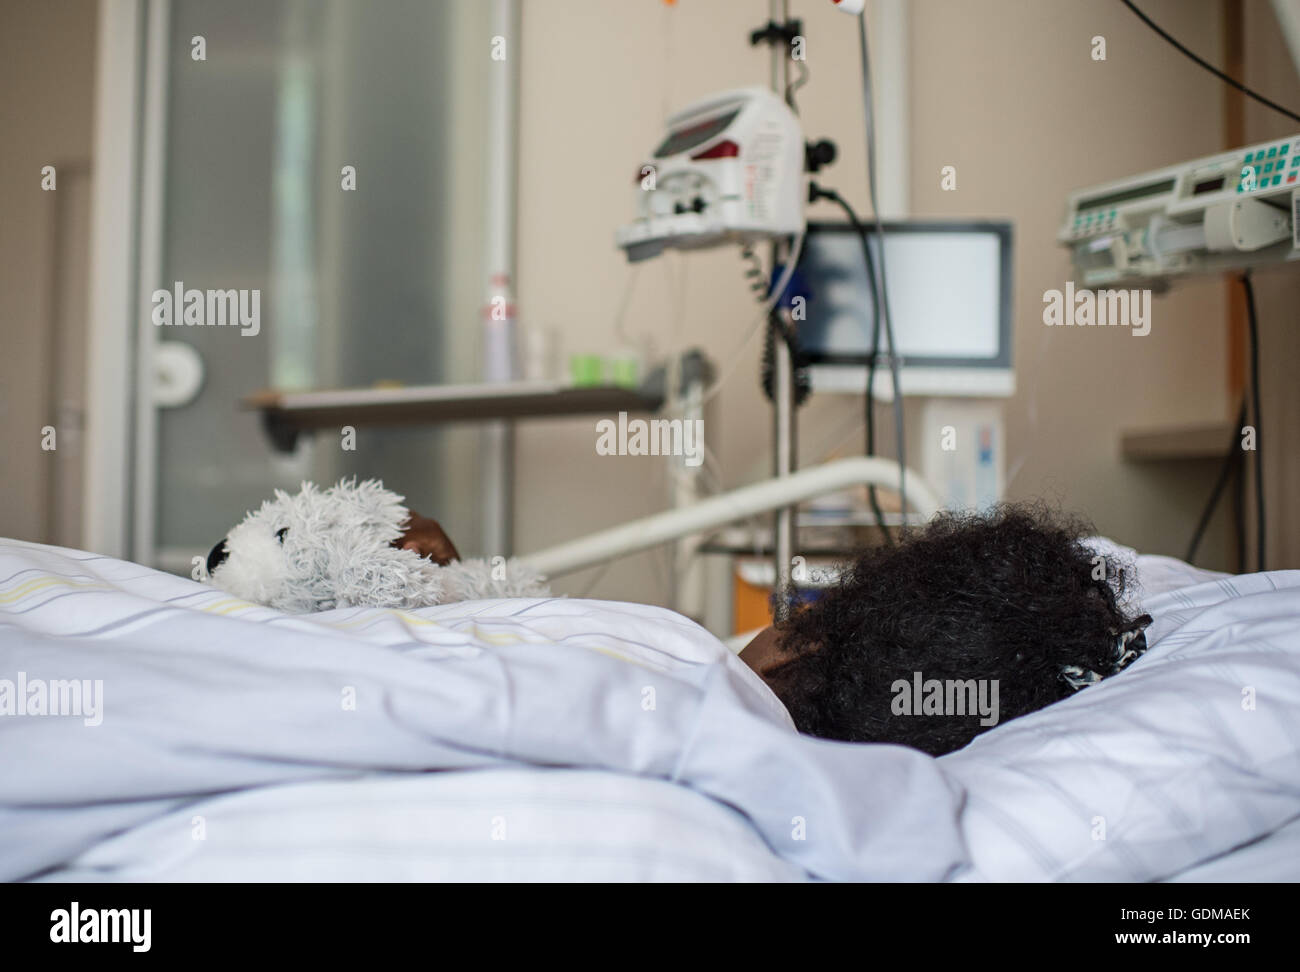 Berlin, Germany. 18th July, 2016. 19-year-old Deqo (name changed) from Somalia lies in her bed in the Waldfriede - Stock Image